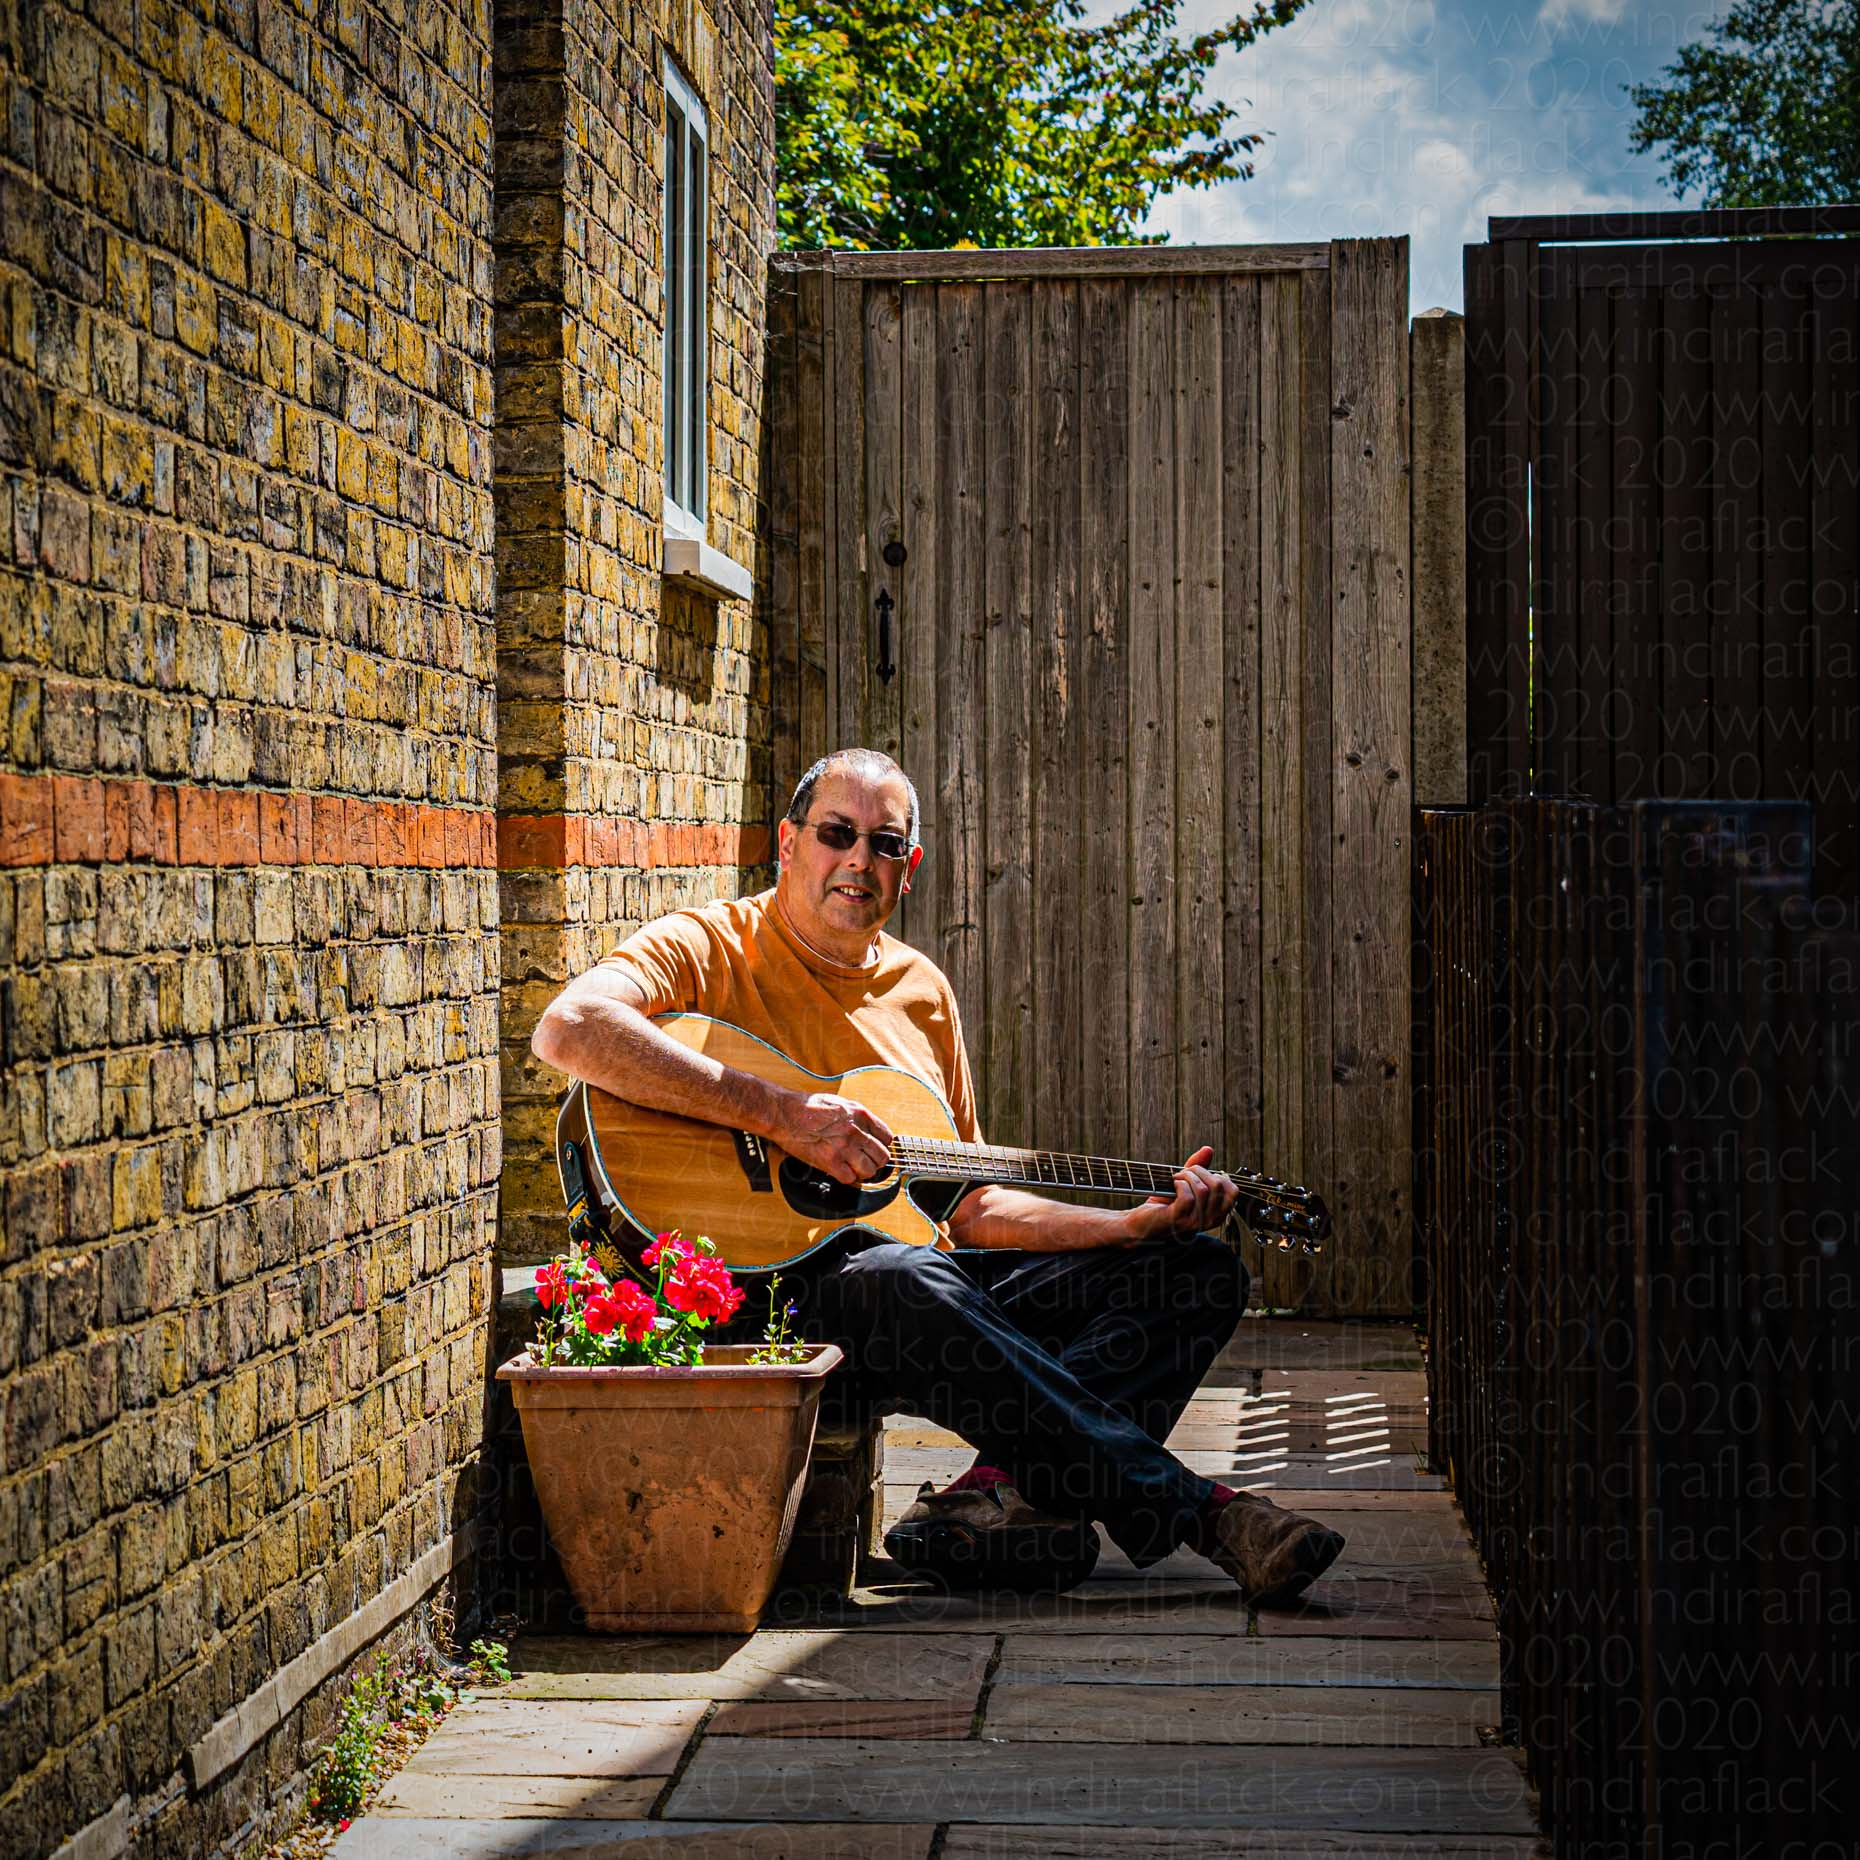 John musician neighbours in lockdown portrait taken by Indira Flack portrait photographer